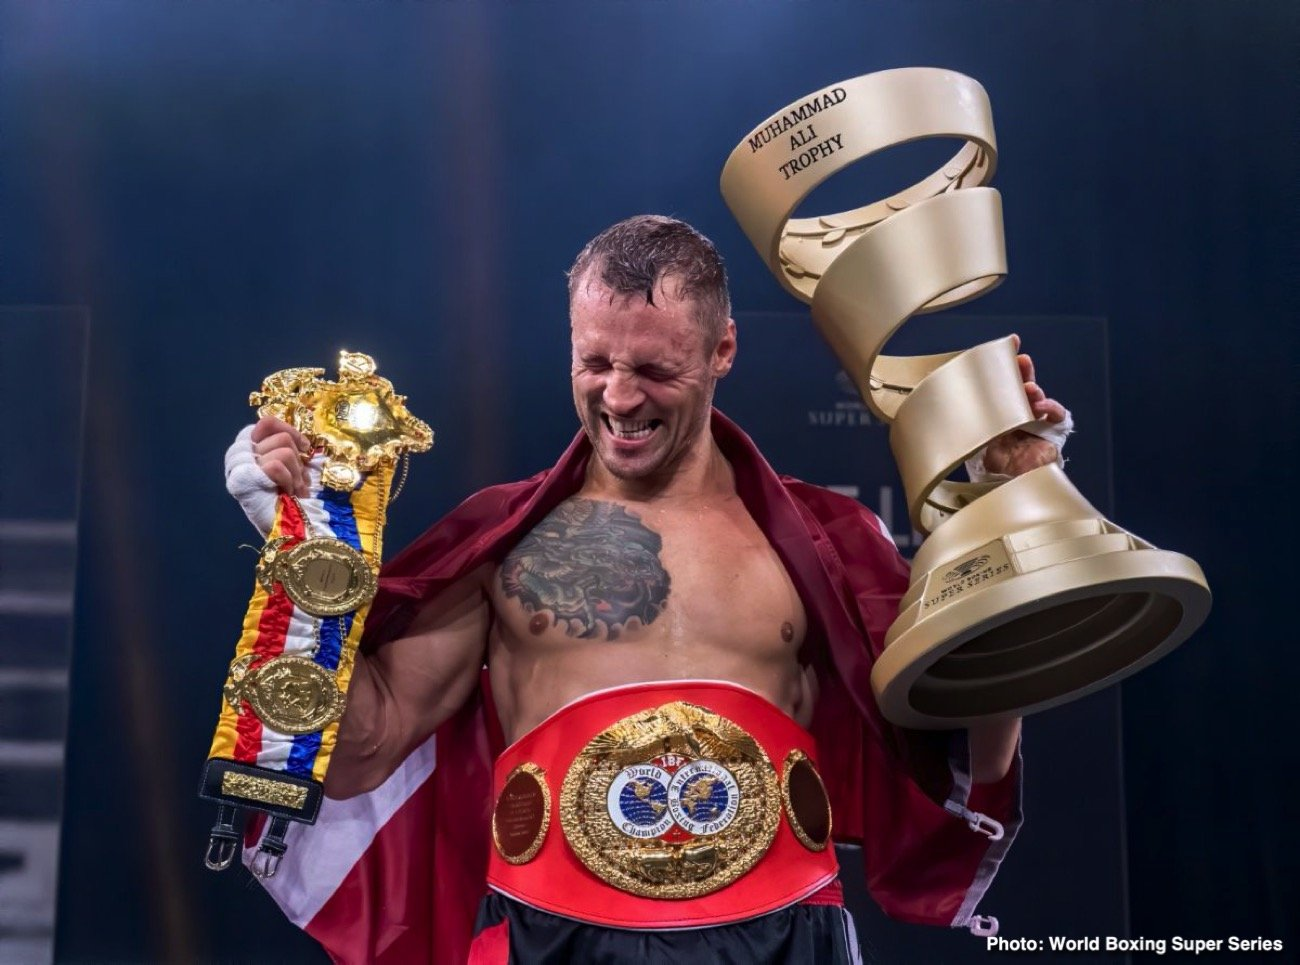 Mairis Briedis, Yuniel Dorticos - Season II of the World Boxing Super Series came to its conclusion on Saturday with Mairis Briedis taking home the coveted Muhammad Ali Trophy after a thrilling encounter against Yuniel Dorticos at the Plazamedia Studios in Munich, Germany.